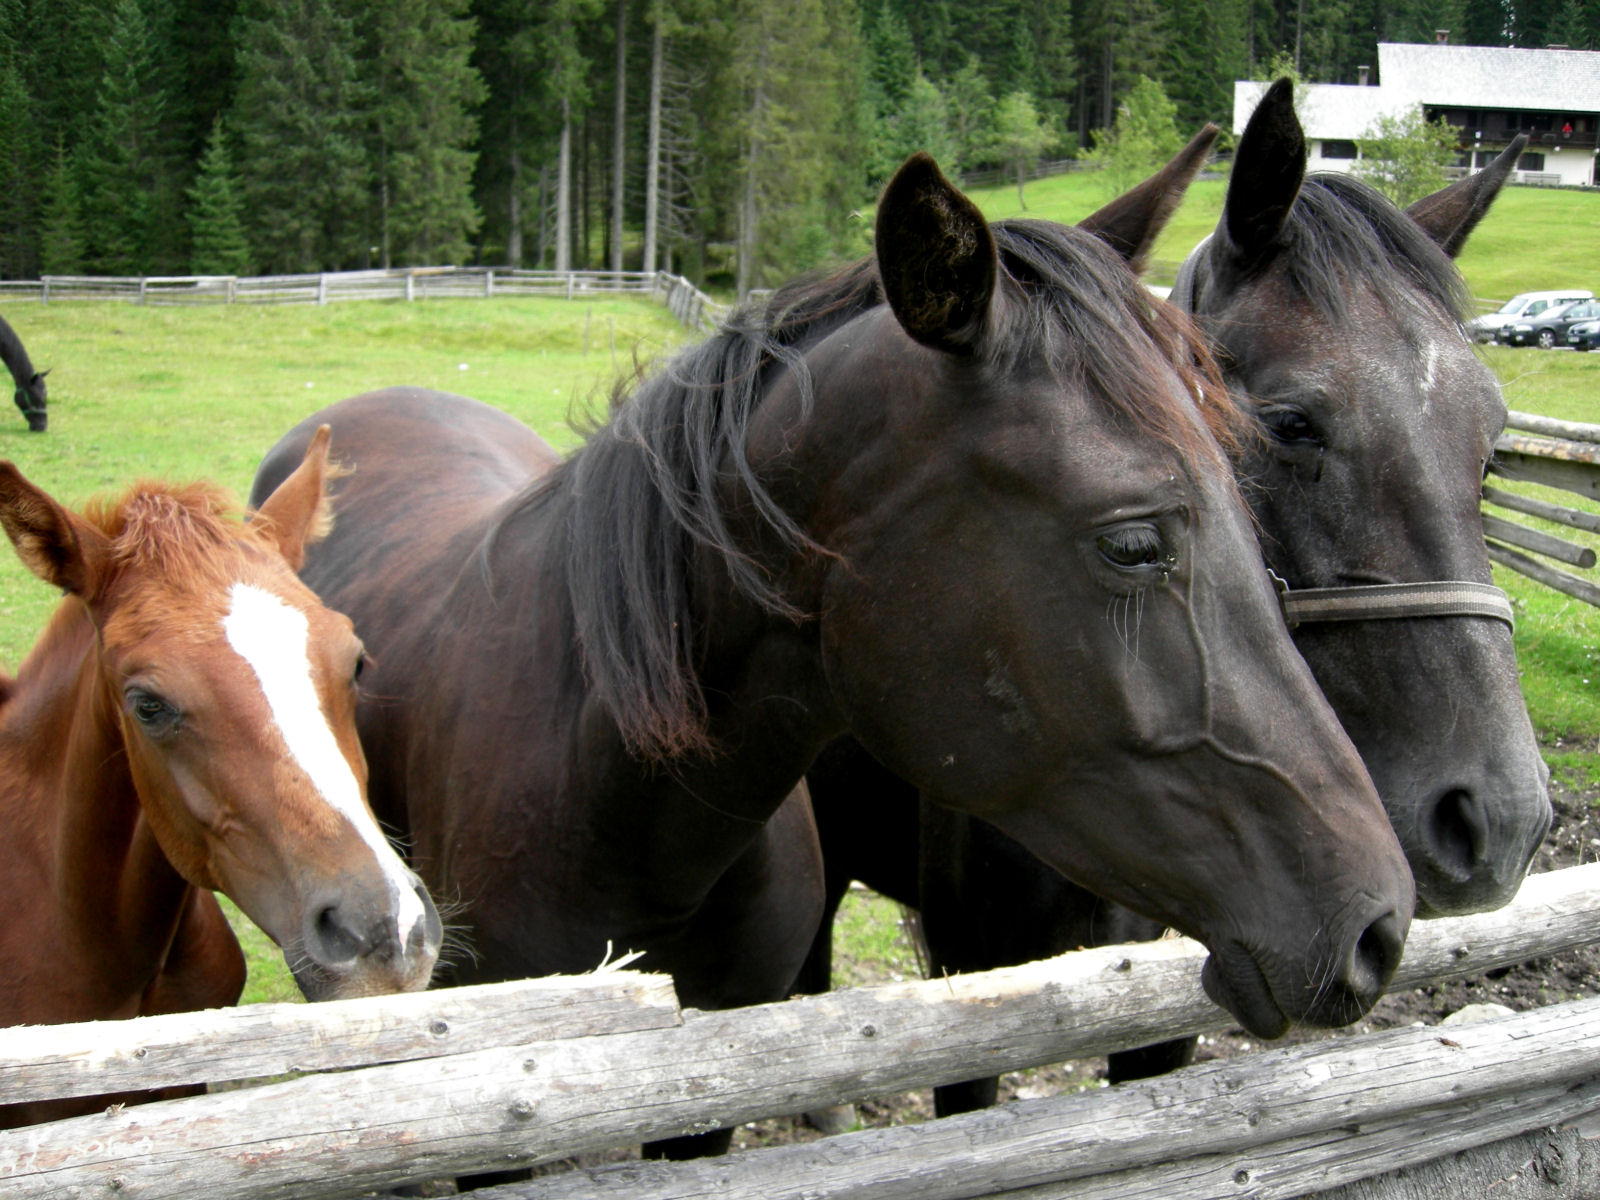 Some horses in Pokljuka, Slovenia